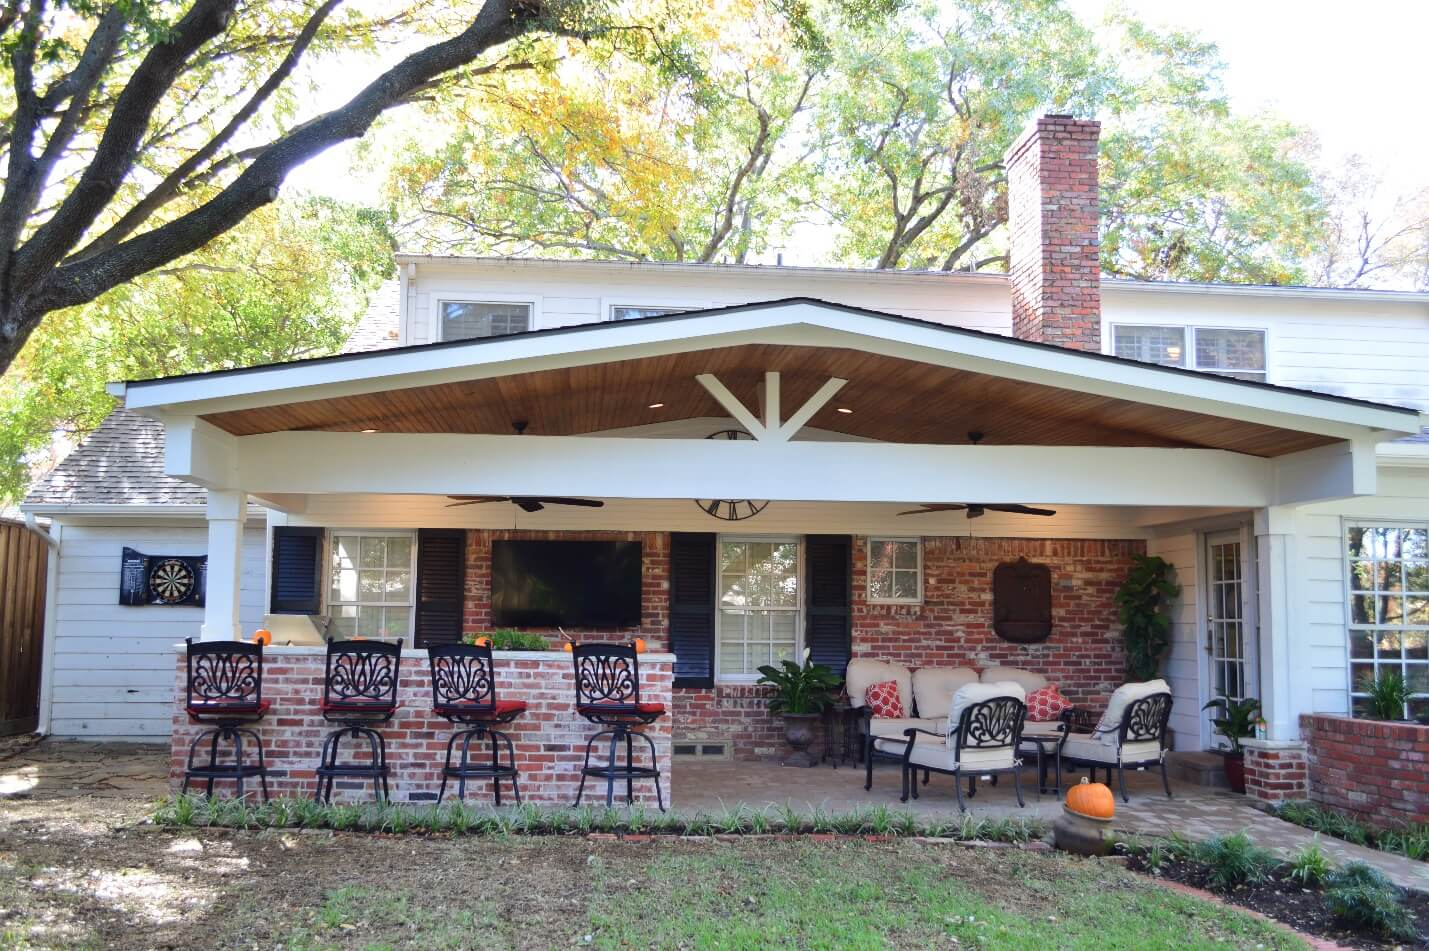 Covered Patio Addition With Brick Bar